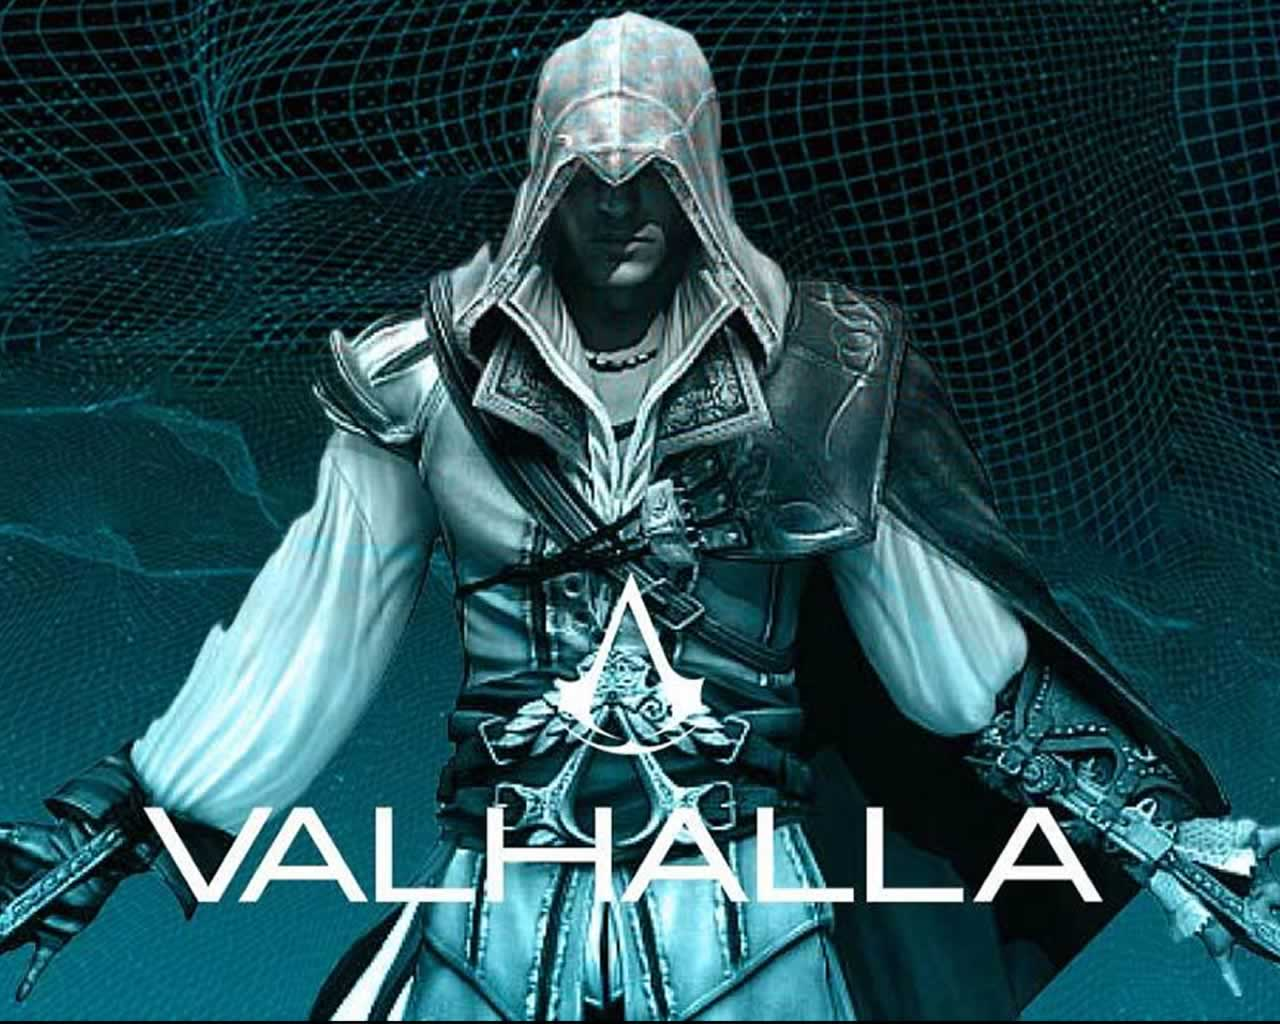 assassins creed valhalla afto ine to polyanamenomeno kinimatografiko treiler